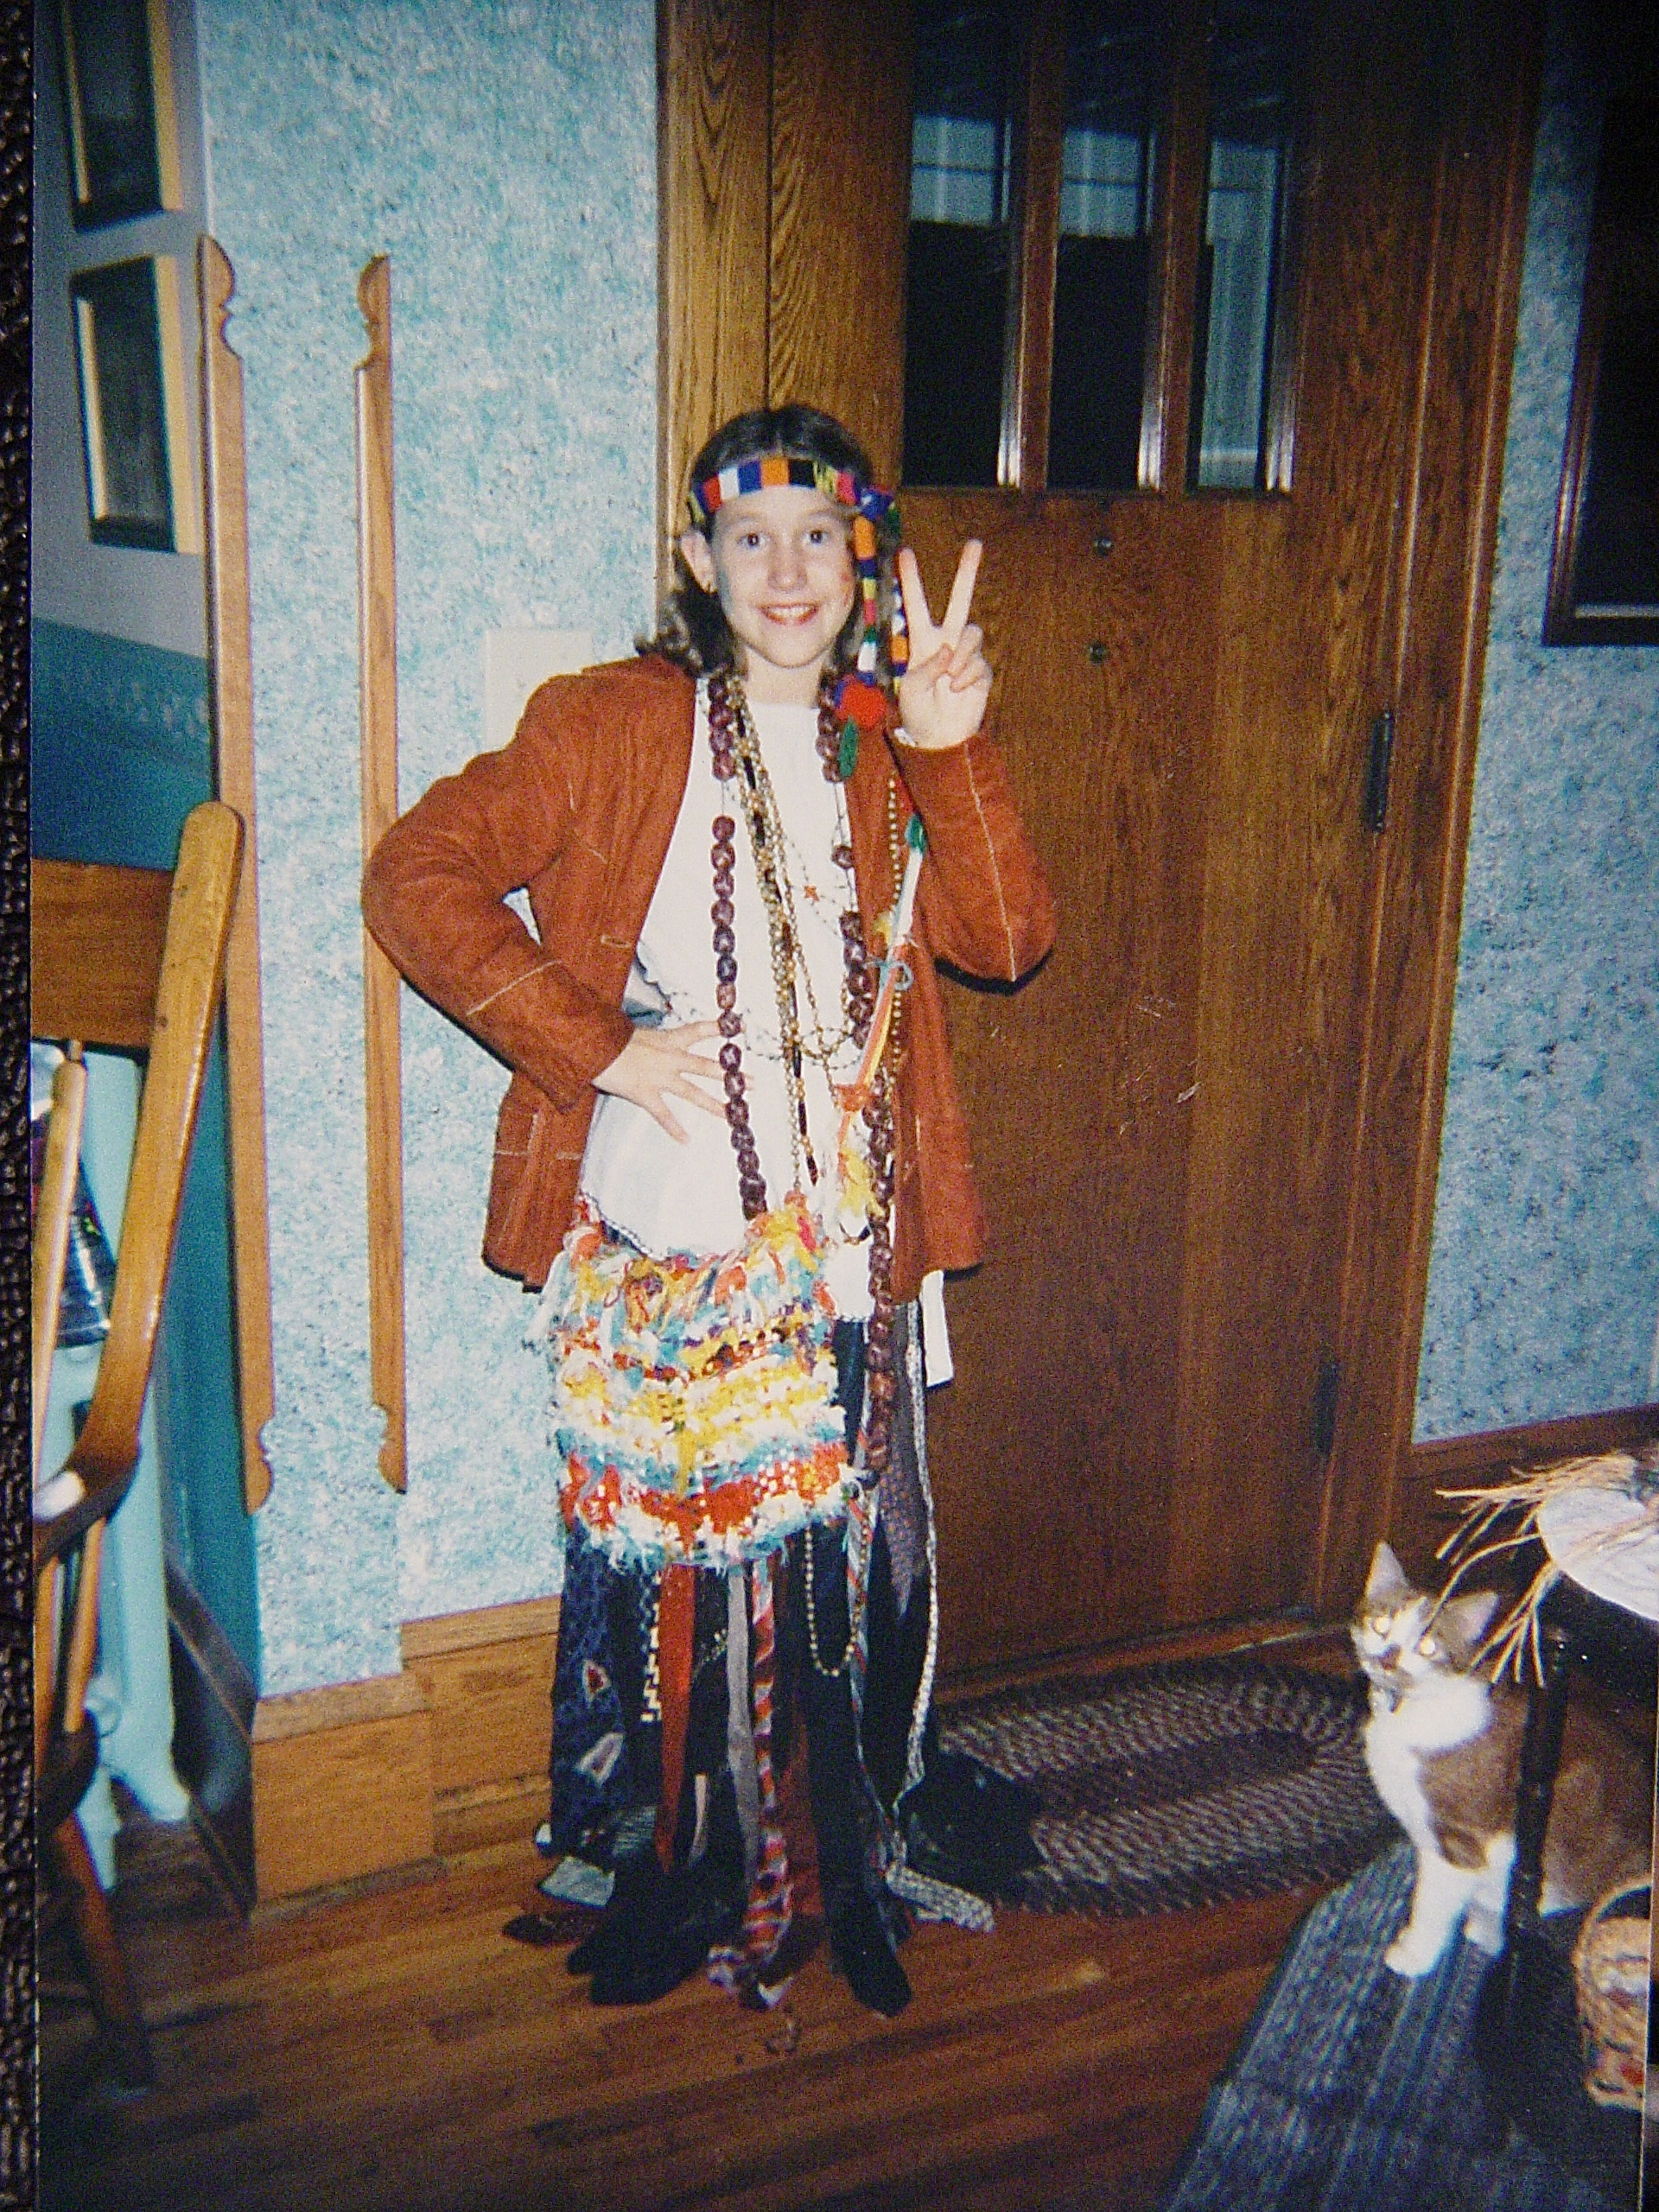 behind the song hitchhiker of the universe and the legendary hippie halloween costume - Universe Halloween Costume